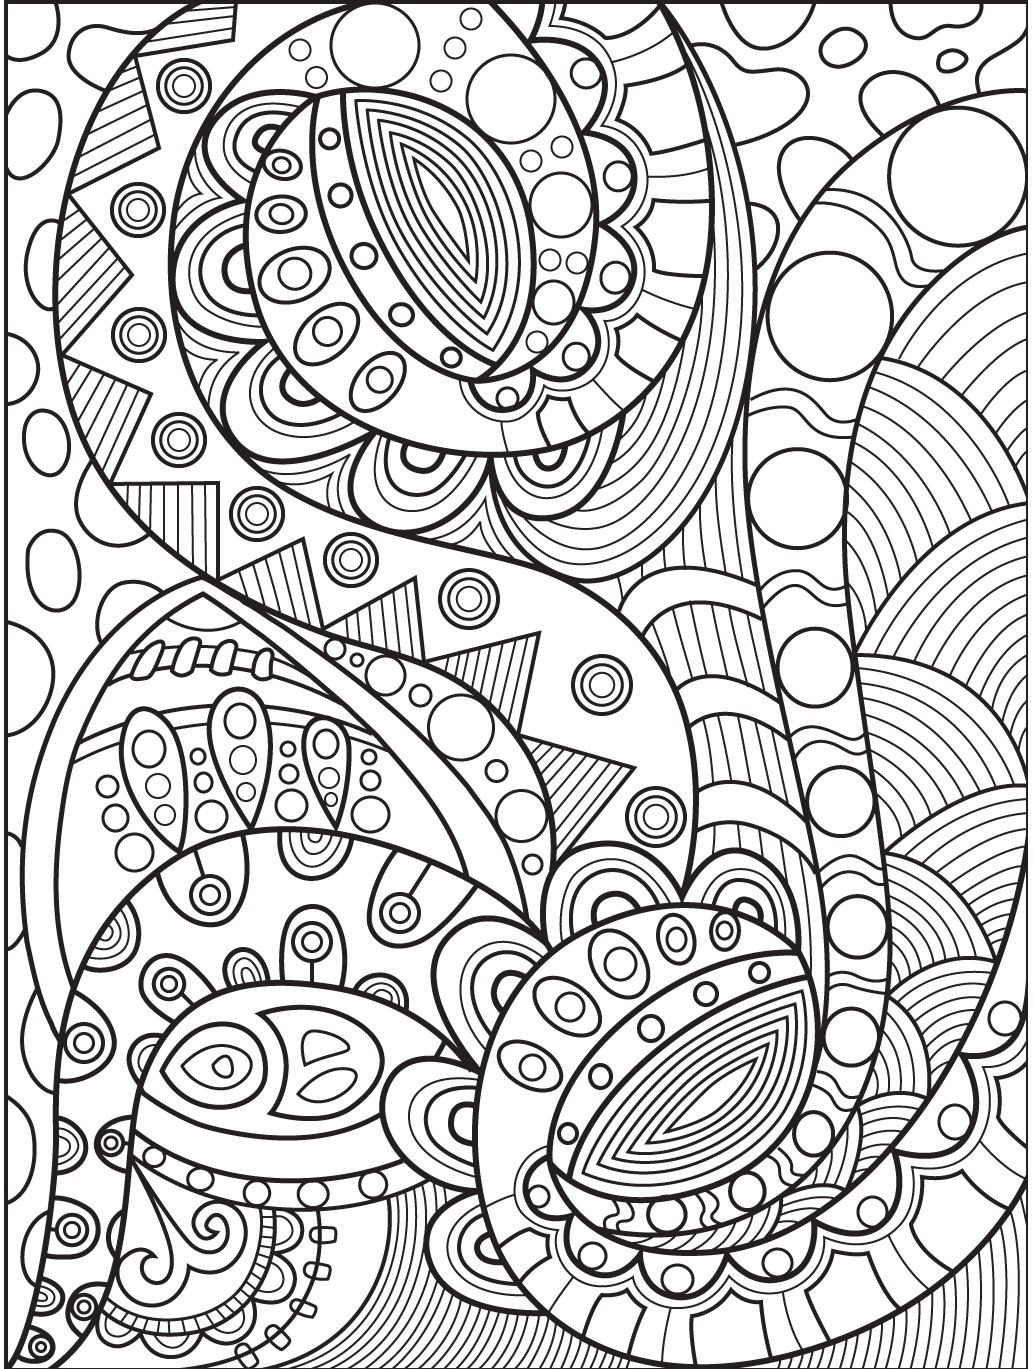 Abstract Coloring Page On Colorish Coloring Book App For Adults By Goodsofttech Abstract Coloring Pages Coloring Book App Coloring Books